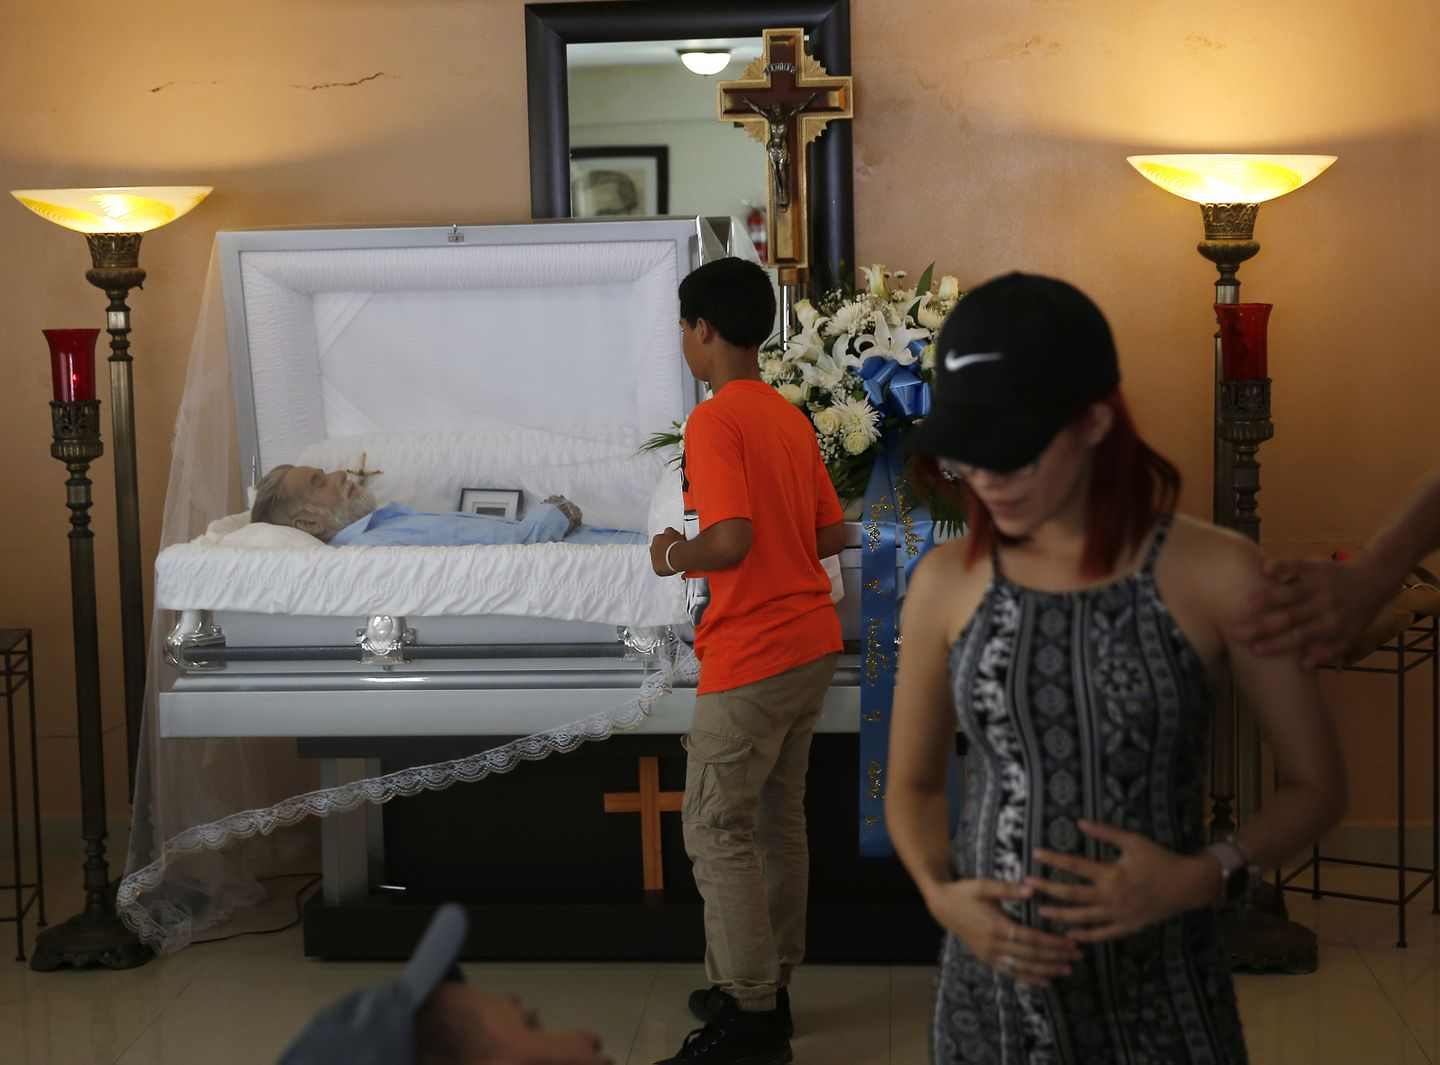 Ruiz's daughter, Kariana Ruiz, who is five months pregnant, attended the services for her father at Funeraria Hernandez.